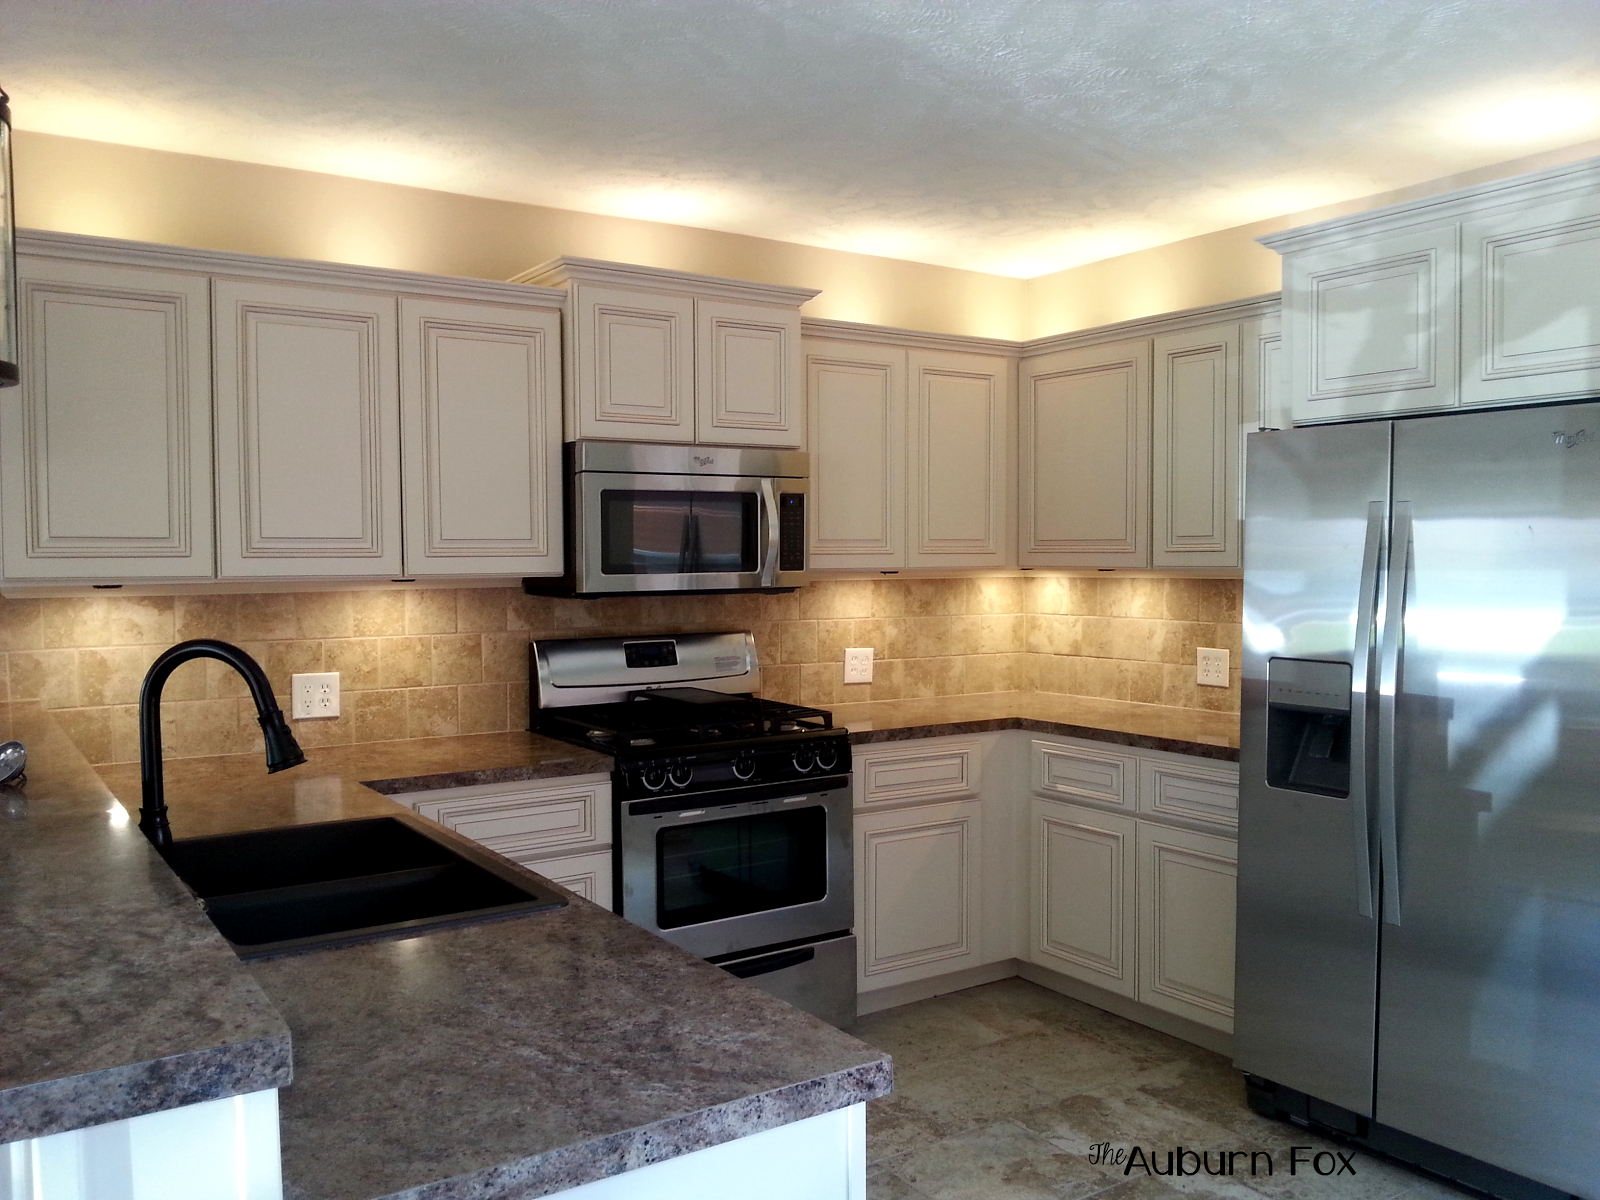 River Run Cabinets, Versitile Grey SW Paint, Amerock Hardware #newhome  #renovation